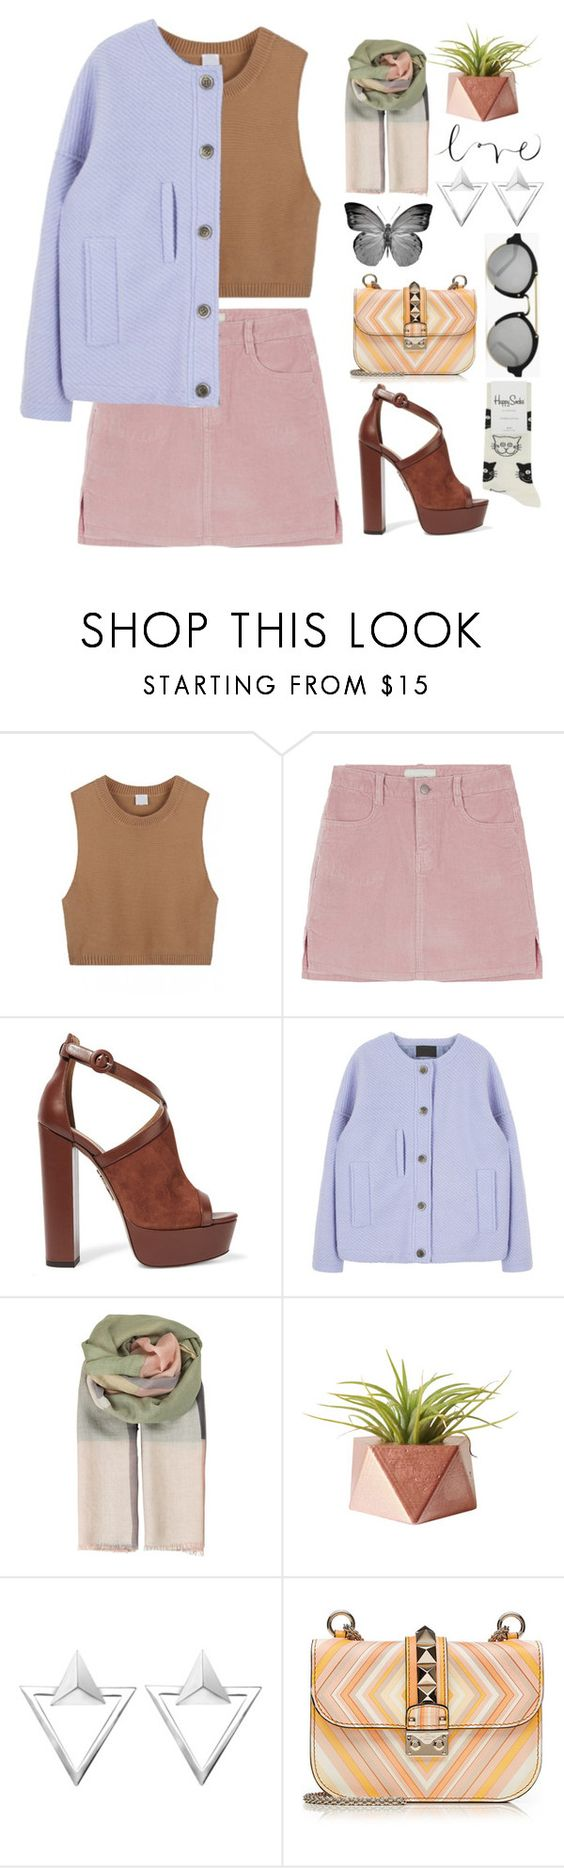 """Spring Colors"" by itsmytimetoshinecoco ❤ liked on Polyvore featuring Aquazzura, BeckSöndergaard, Dot & Bo, Dollhouse, Illesteva, Valentino, Happy Socks, women's clothing, women's fashion and women"